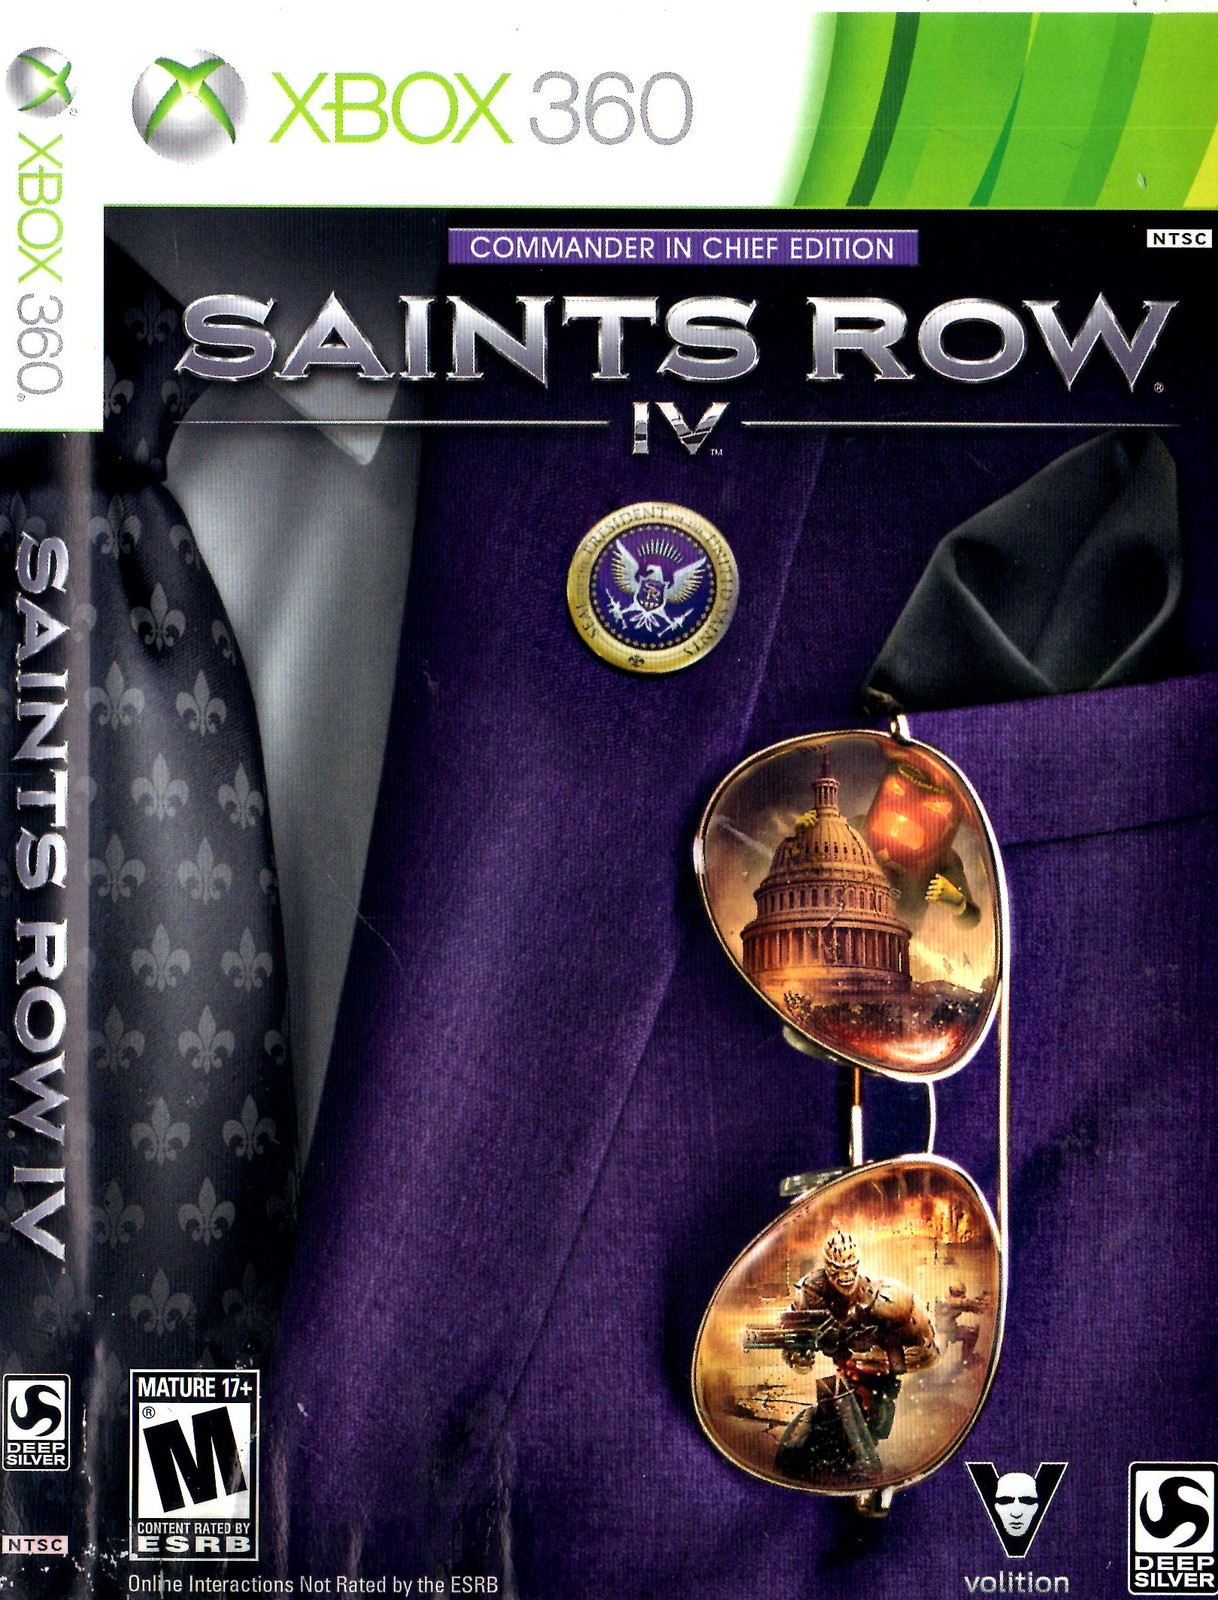 XBox 360 - Saints Row IV